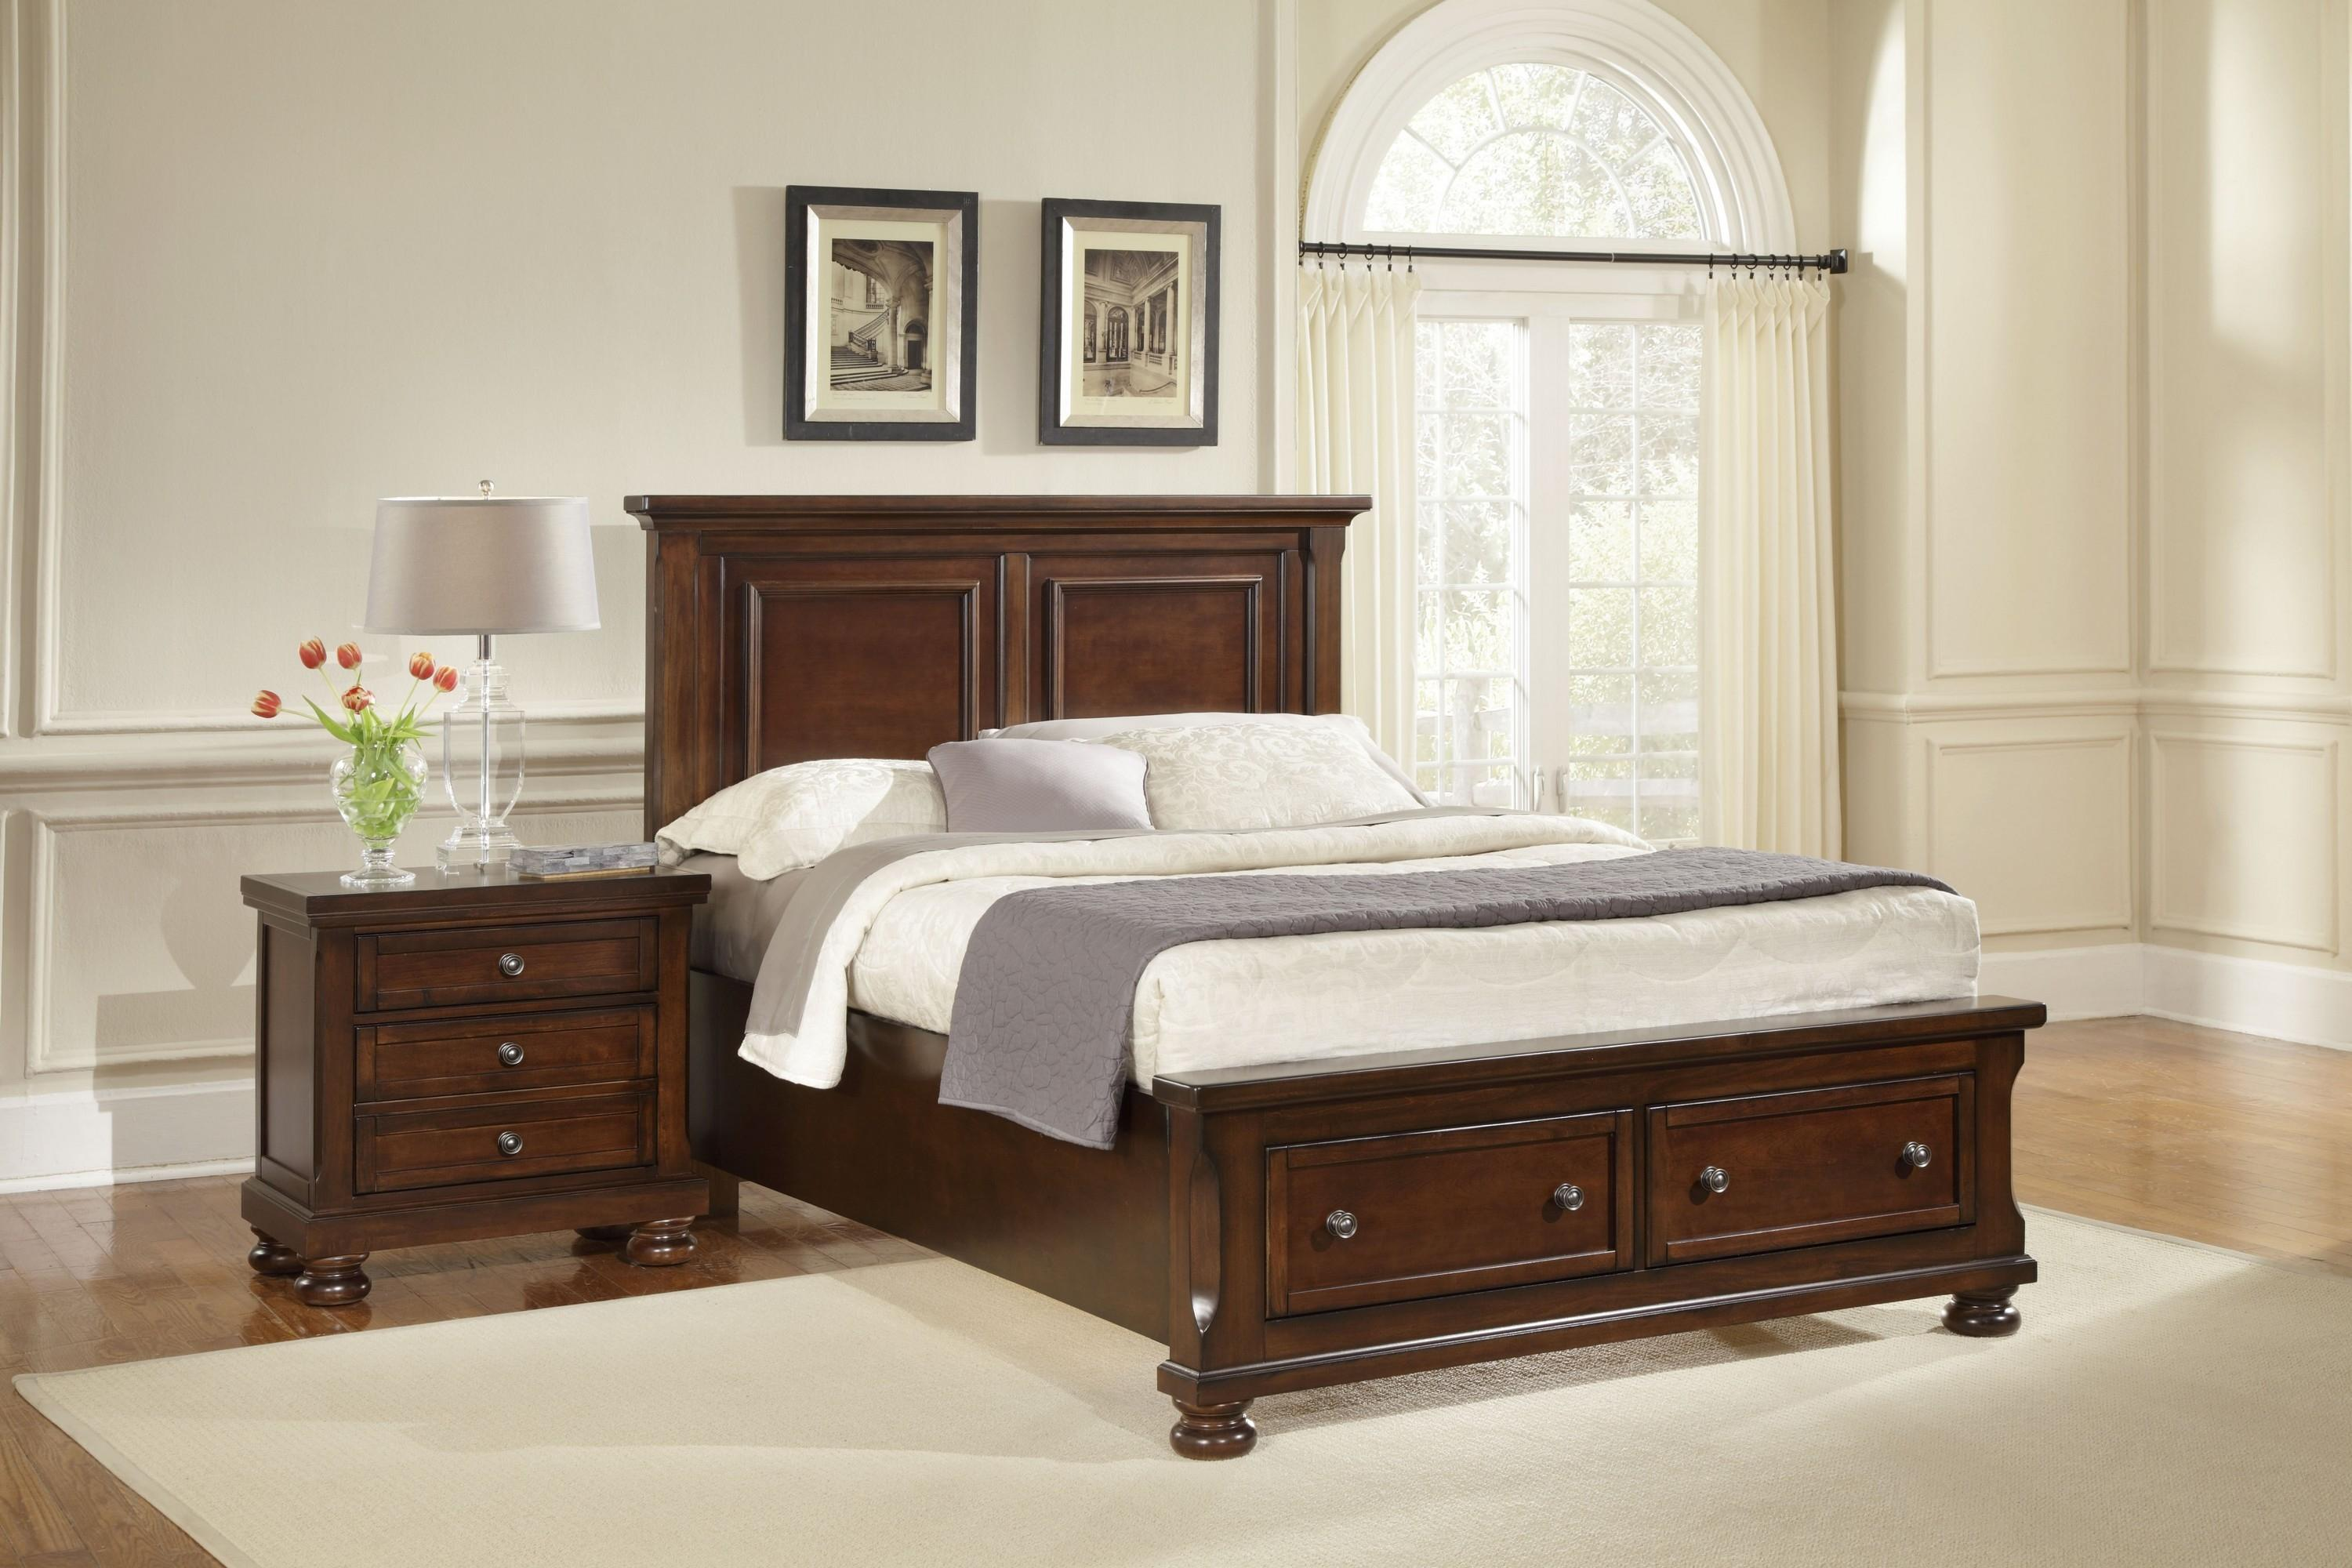 Vaughan Bett Reflections 5 Drawer Chest Furniture Options New York Chests Orange County Middletown Monroe Hudson Valley